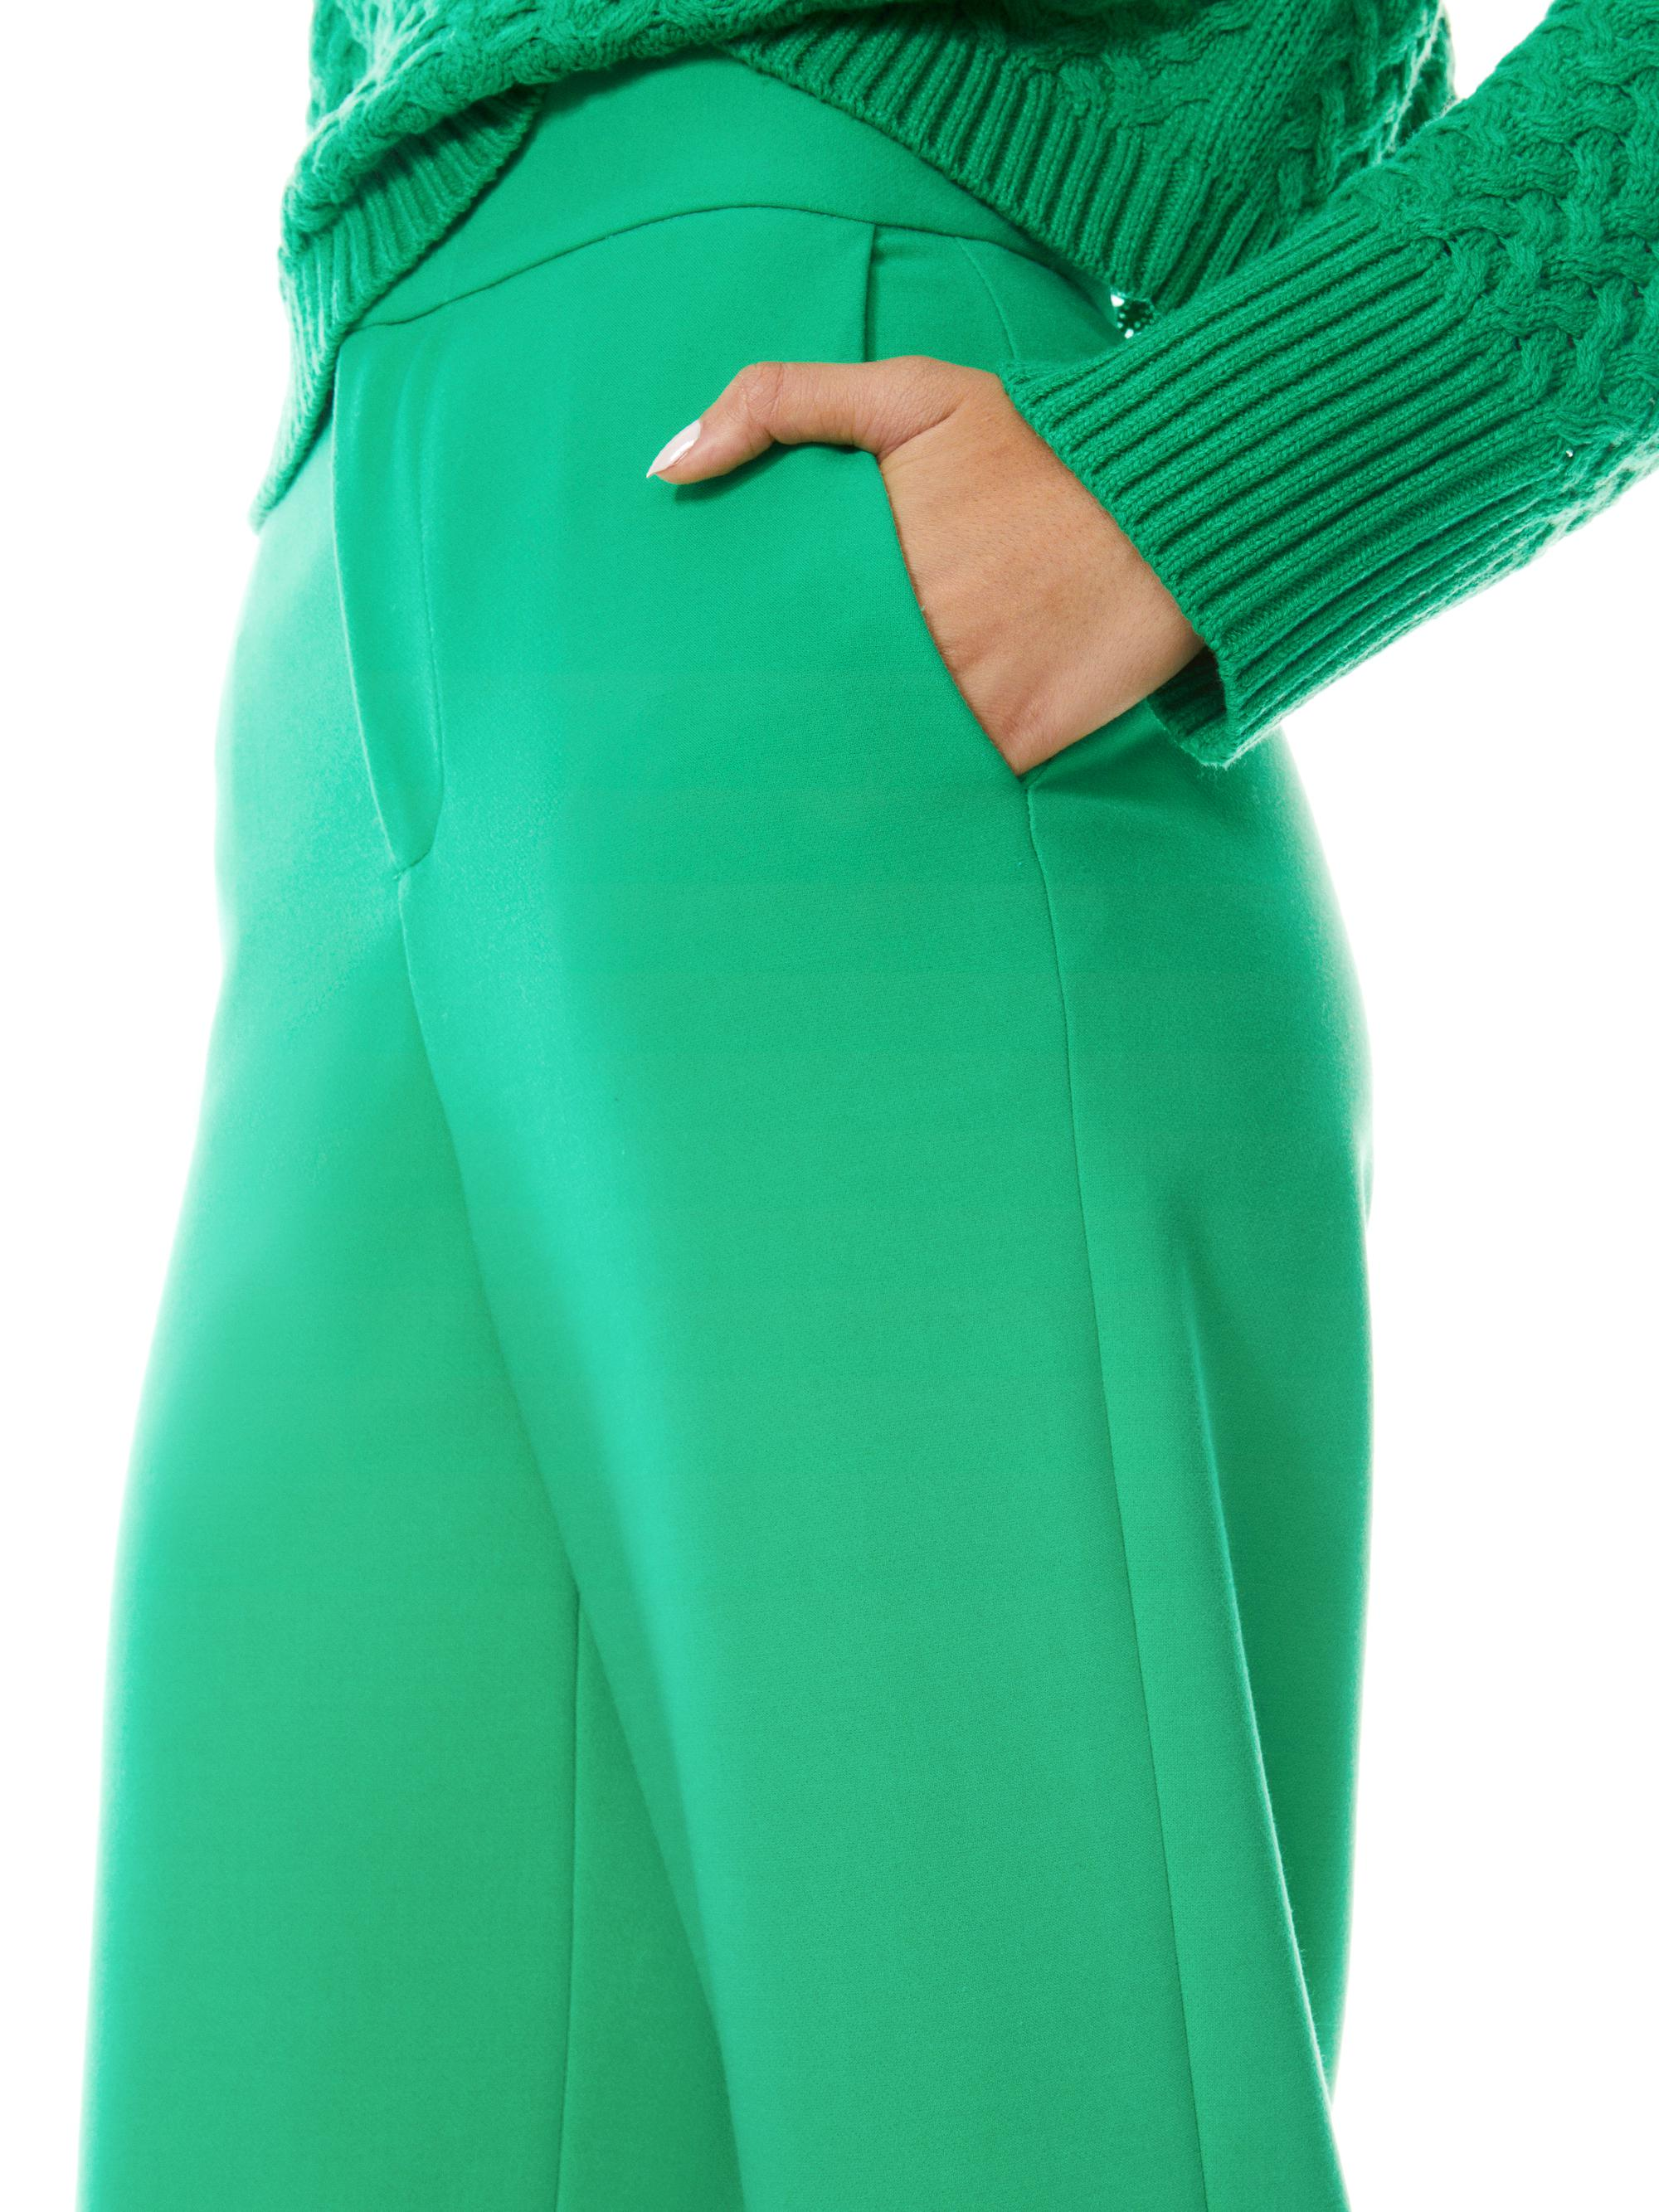 DYLAN HIGH WAISTED WIDE LEG PANT 4